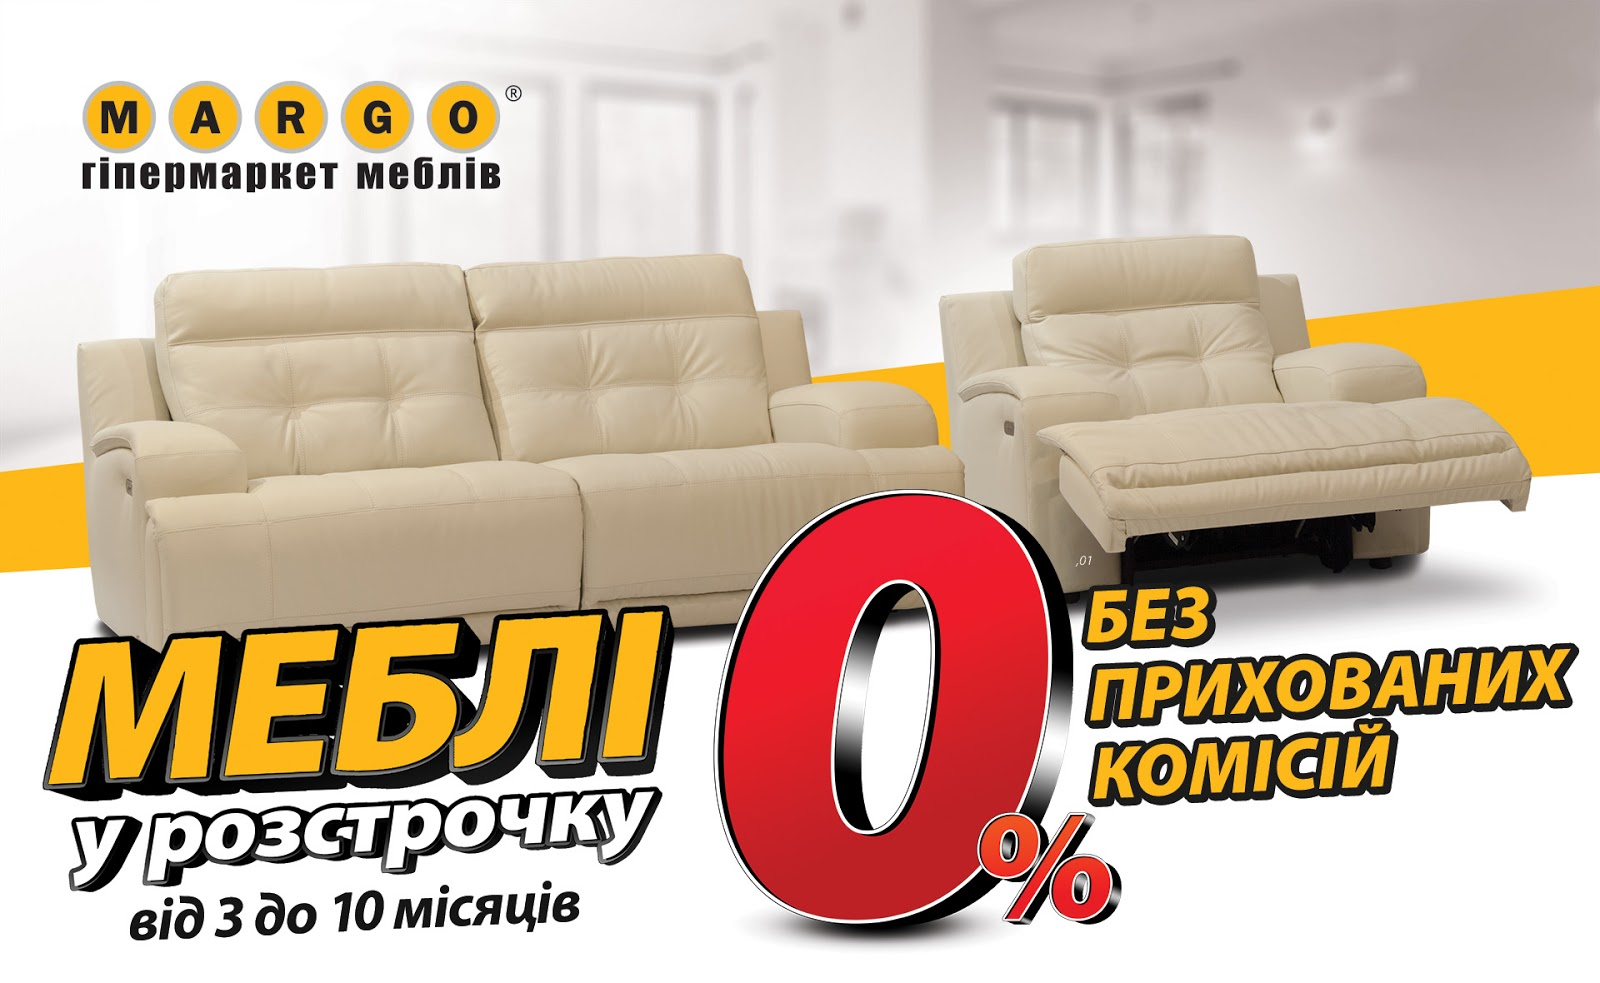 Installment 0% for all furniture on MARGO®